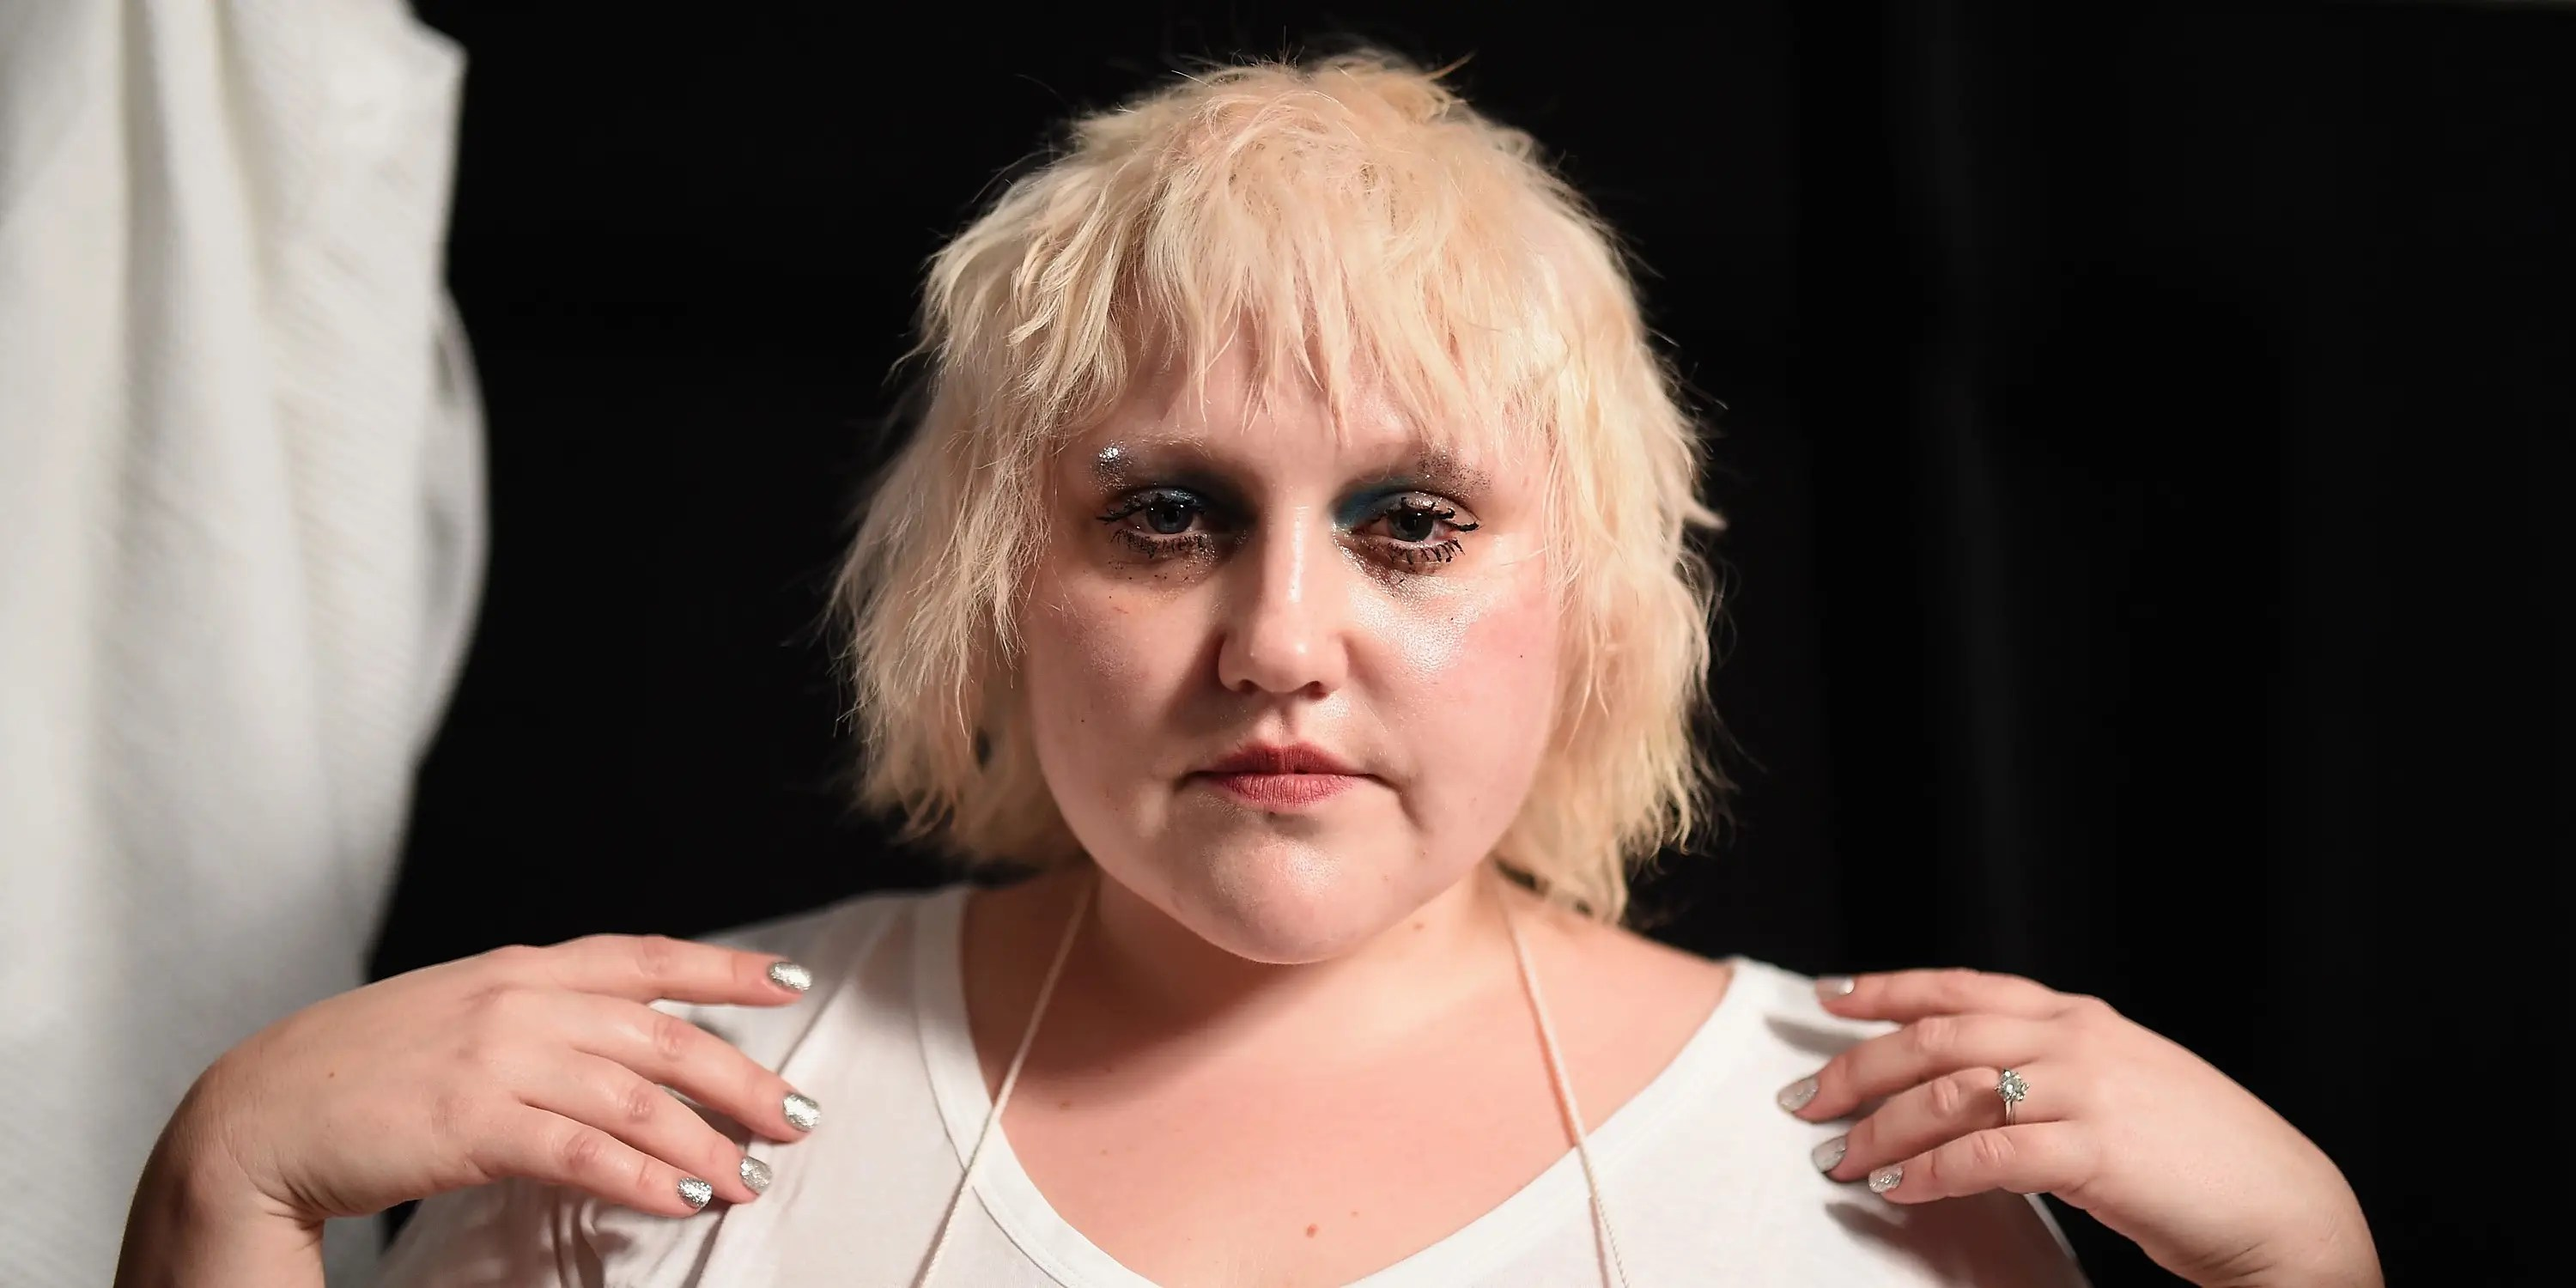 Beth Ditto Marc Jacobs NYFW 2015 backstage